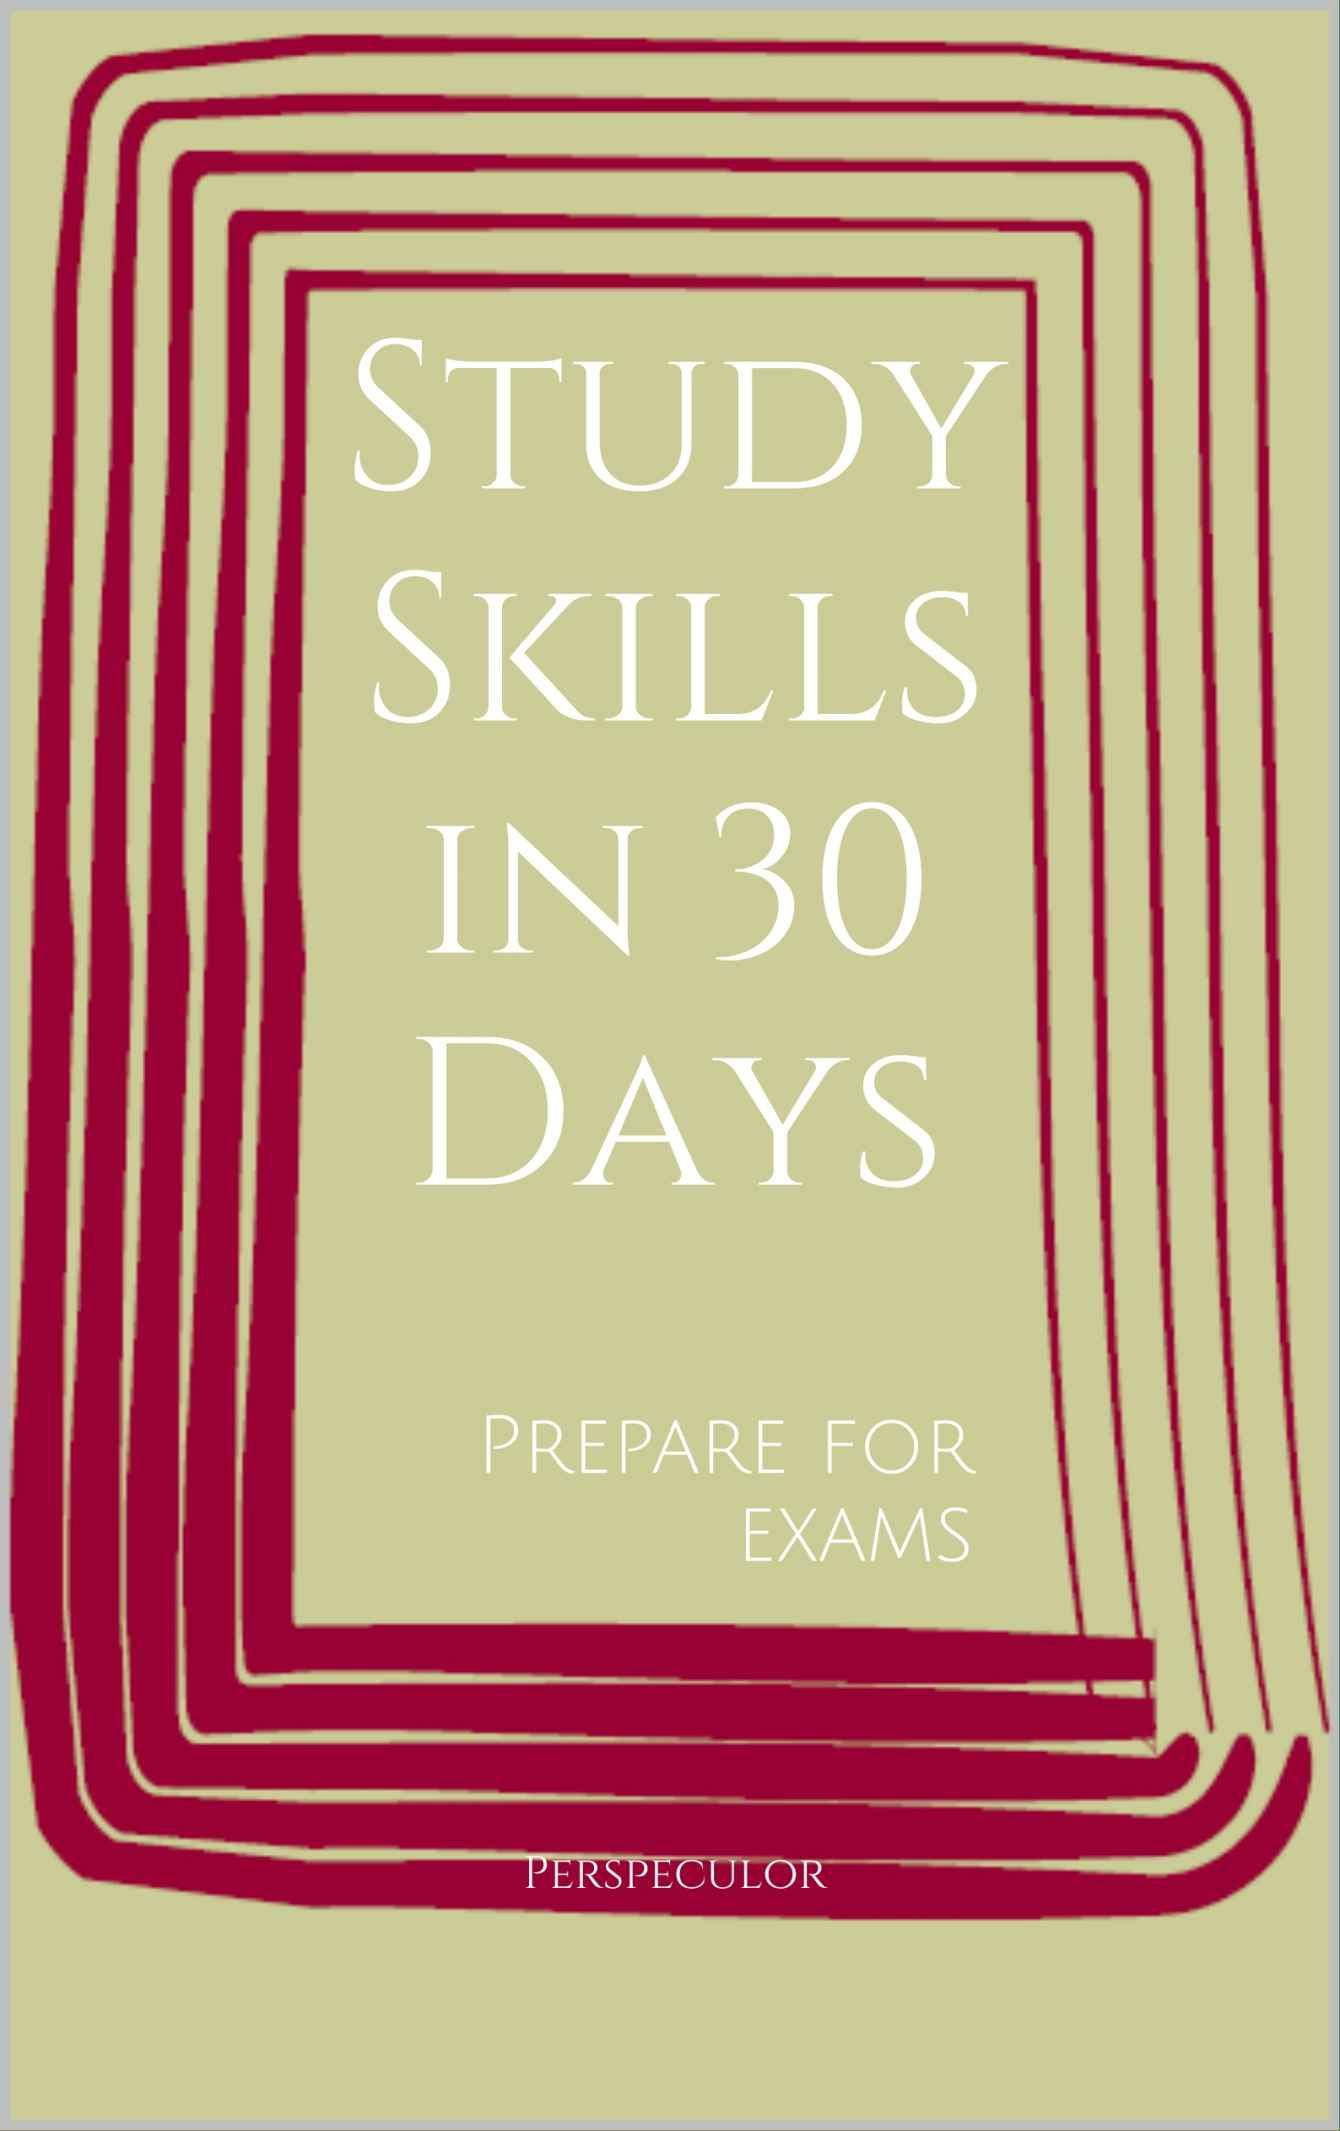 Study Skills in 30 Days: Prepare for Exams. Get the Kindle ebook on the Amazon store now!